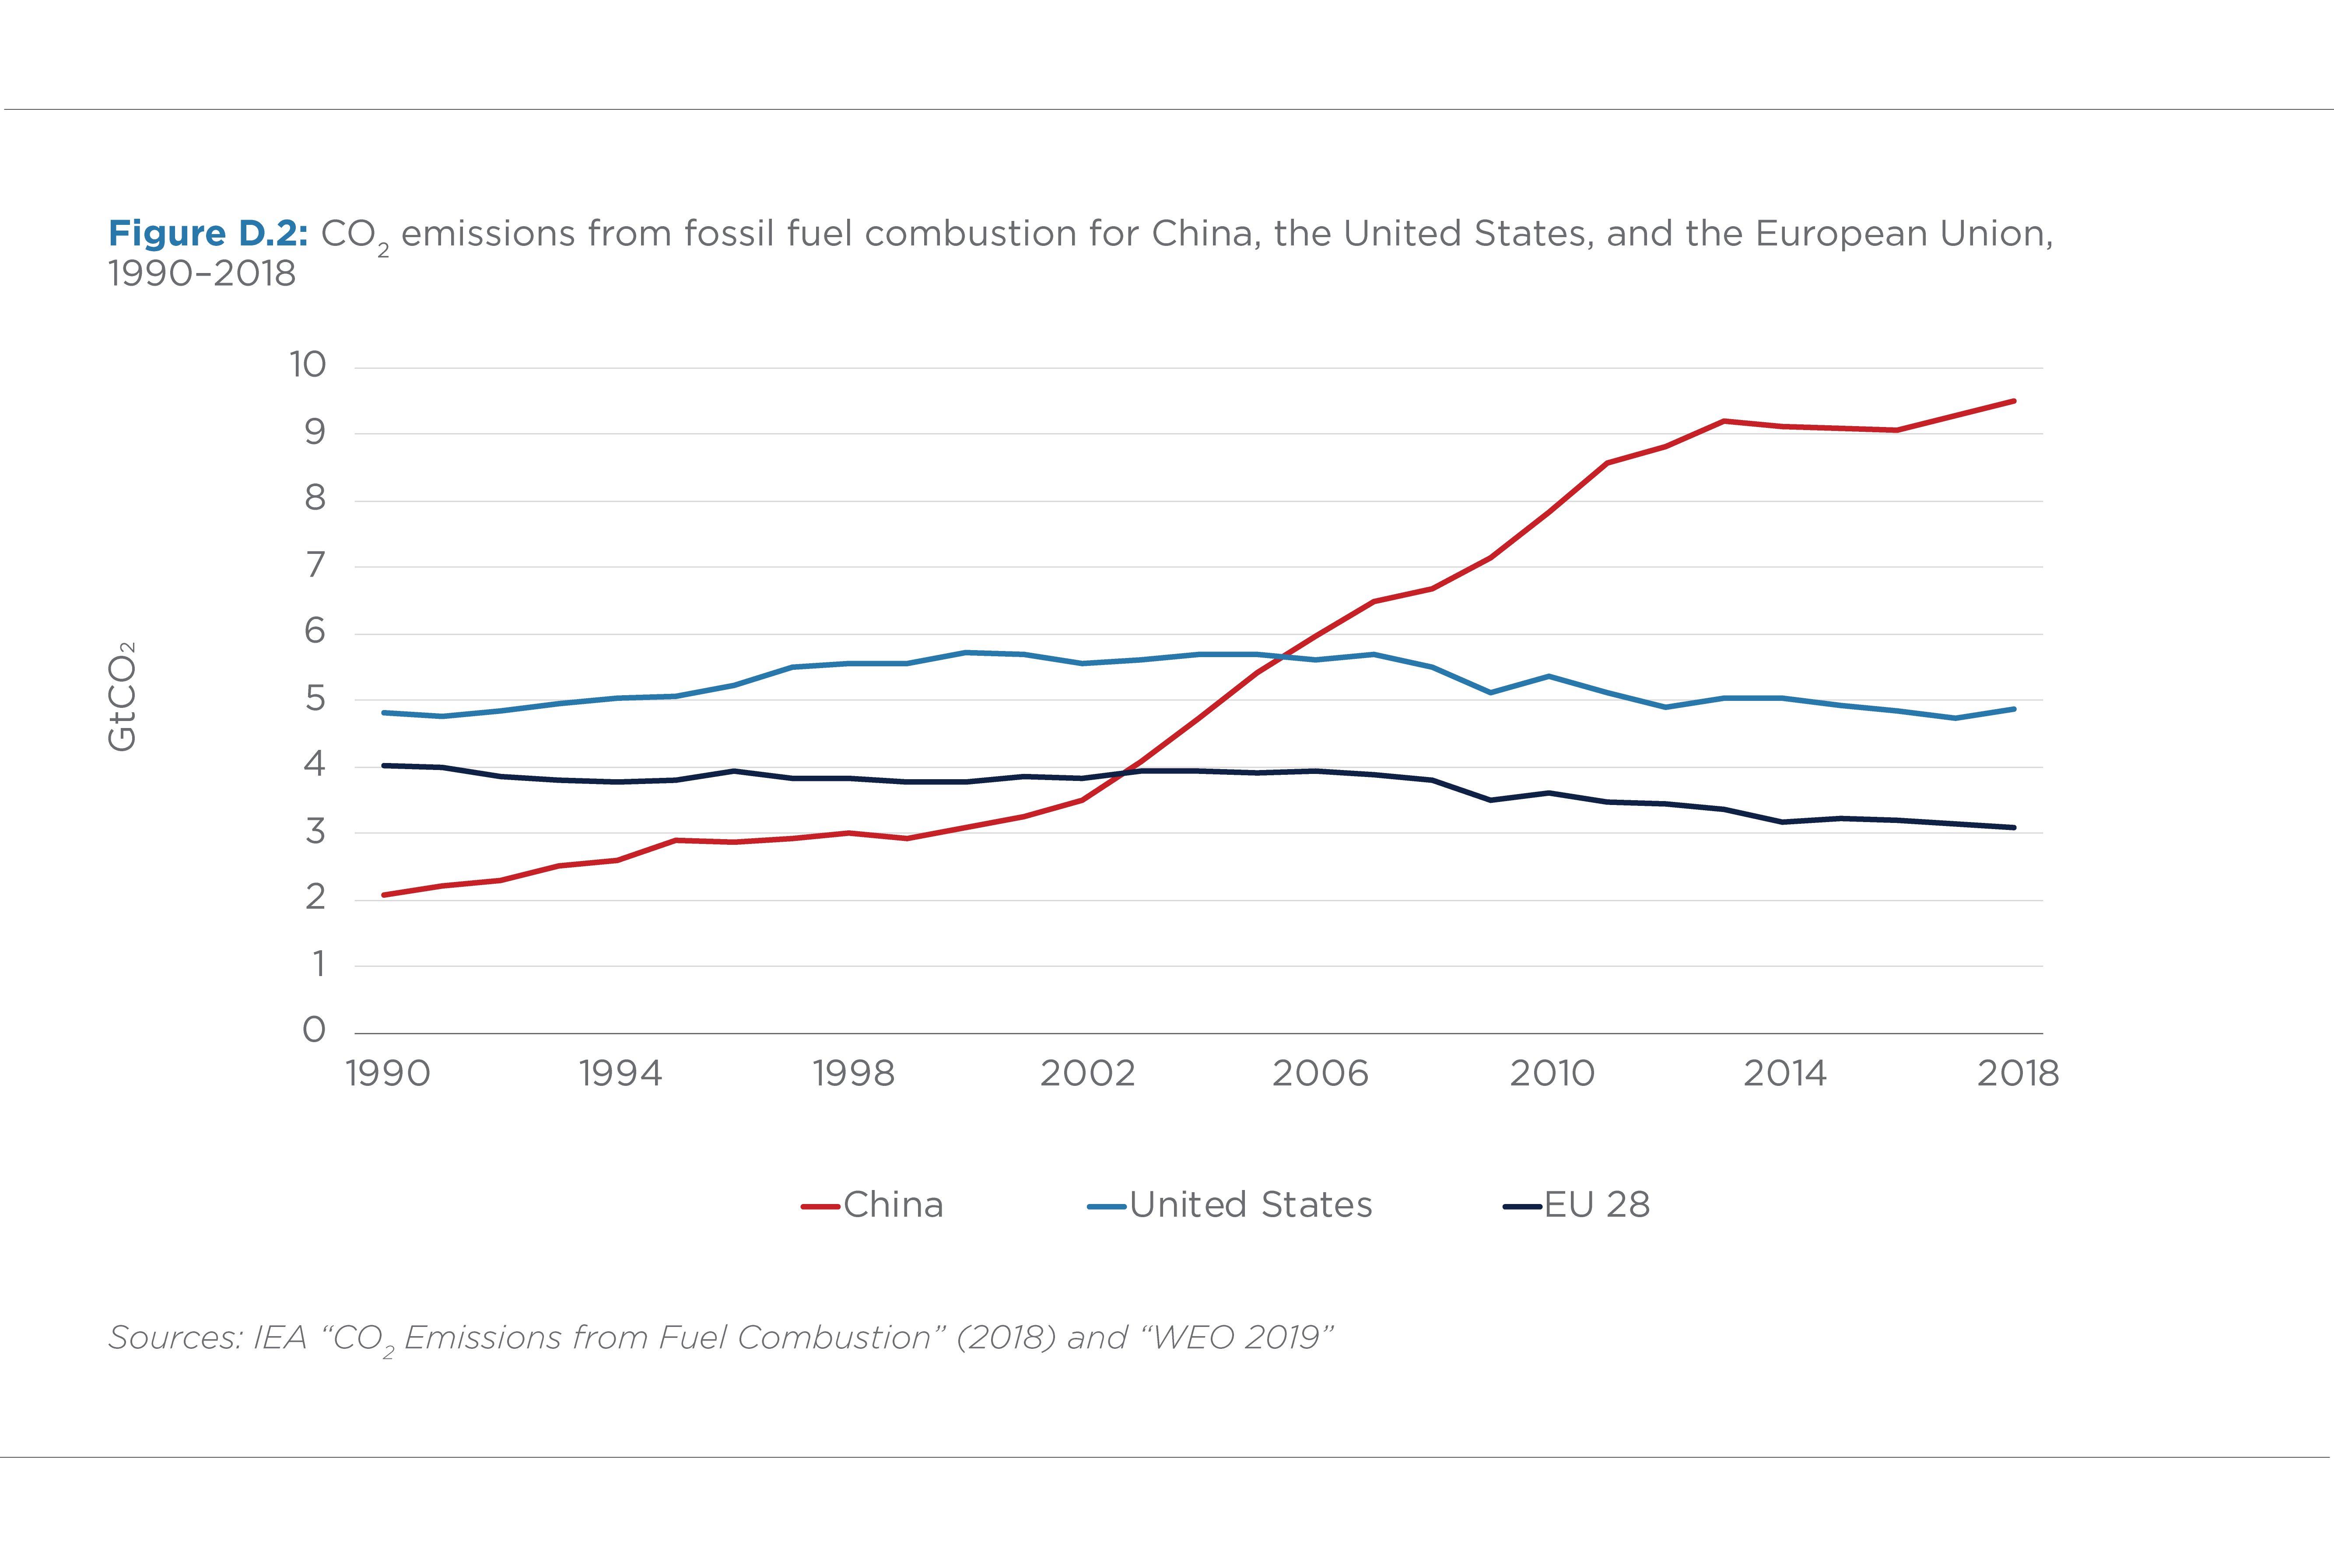 FIGURE D.2. CO2 EMISSIONS FROM THE FOSSIL FUEL COMBUSTION OF CHINA, THE UNITED STATES, AND THE EUROPEAN UNION (1990–2018)